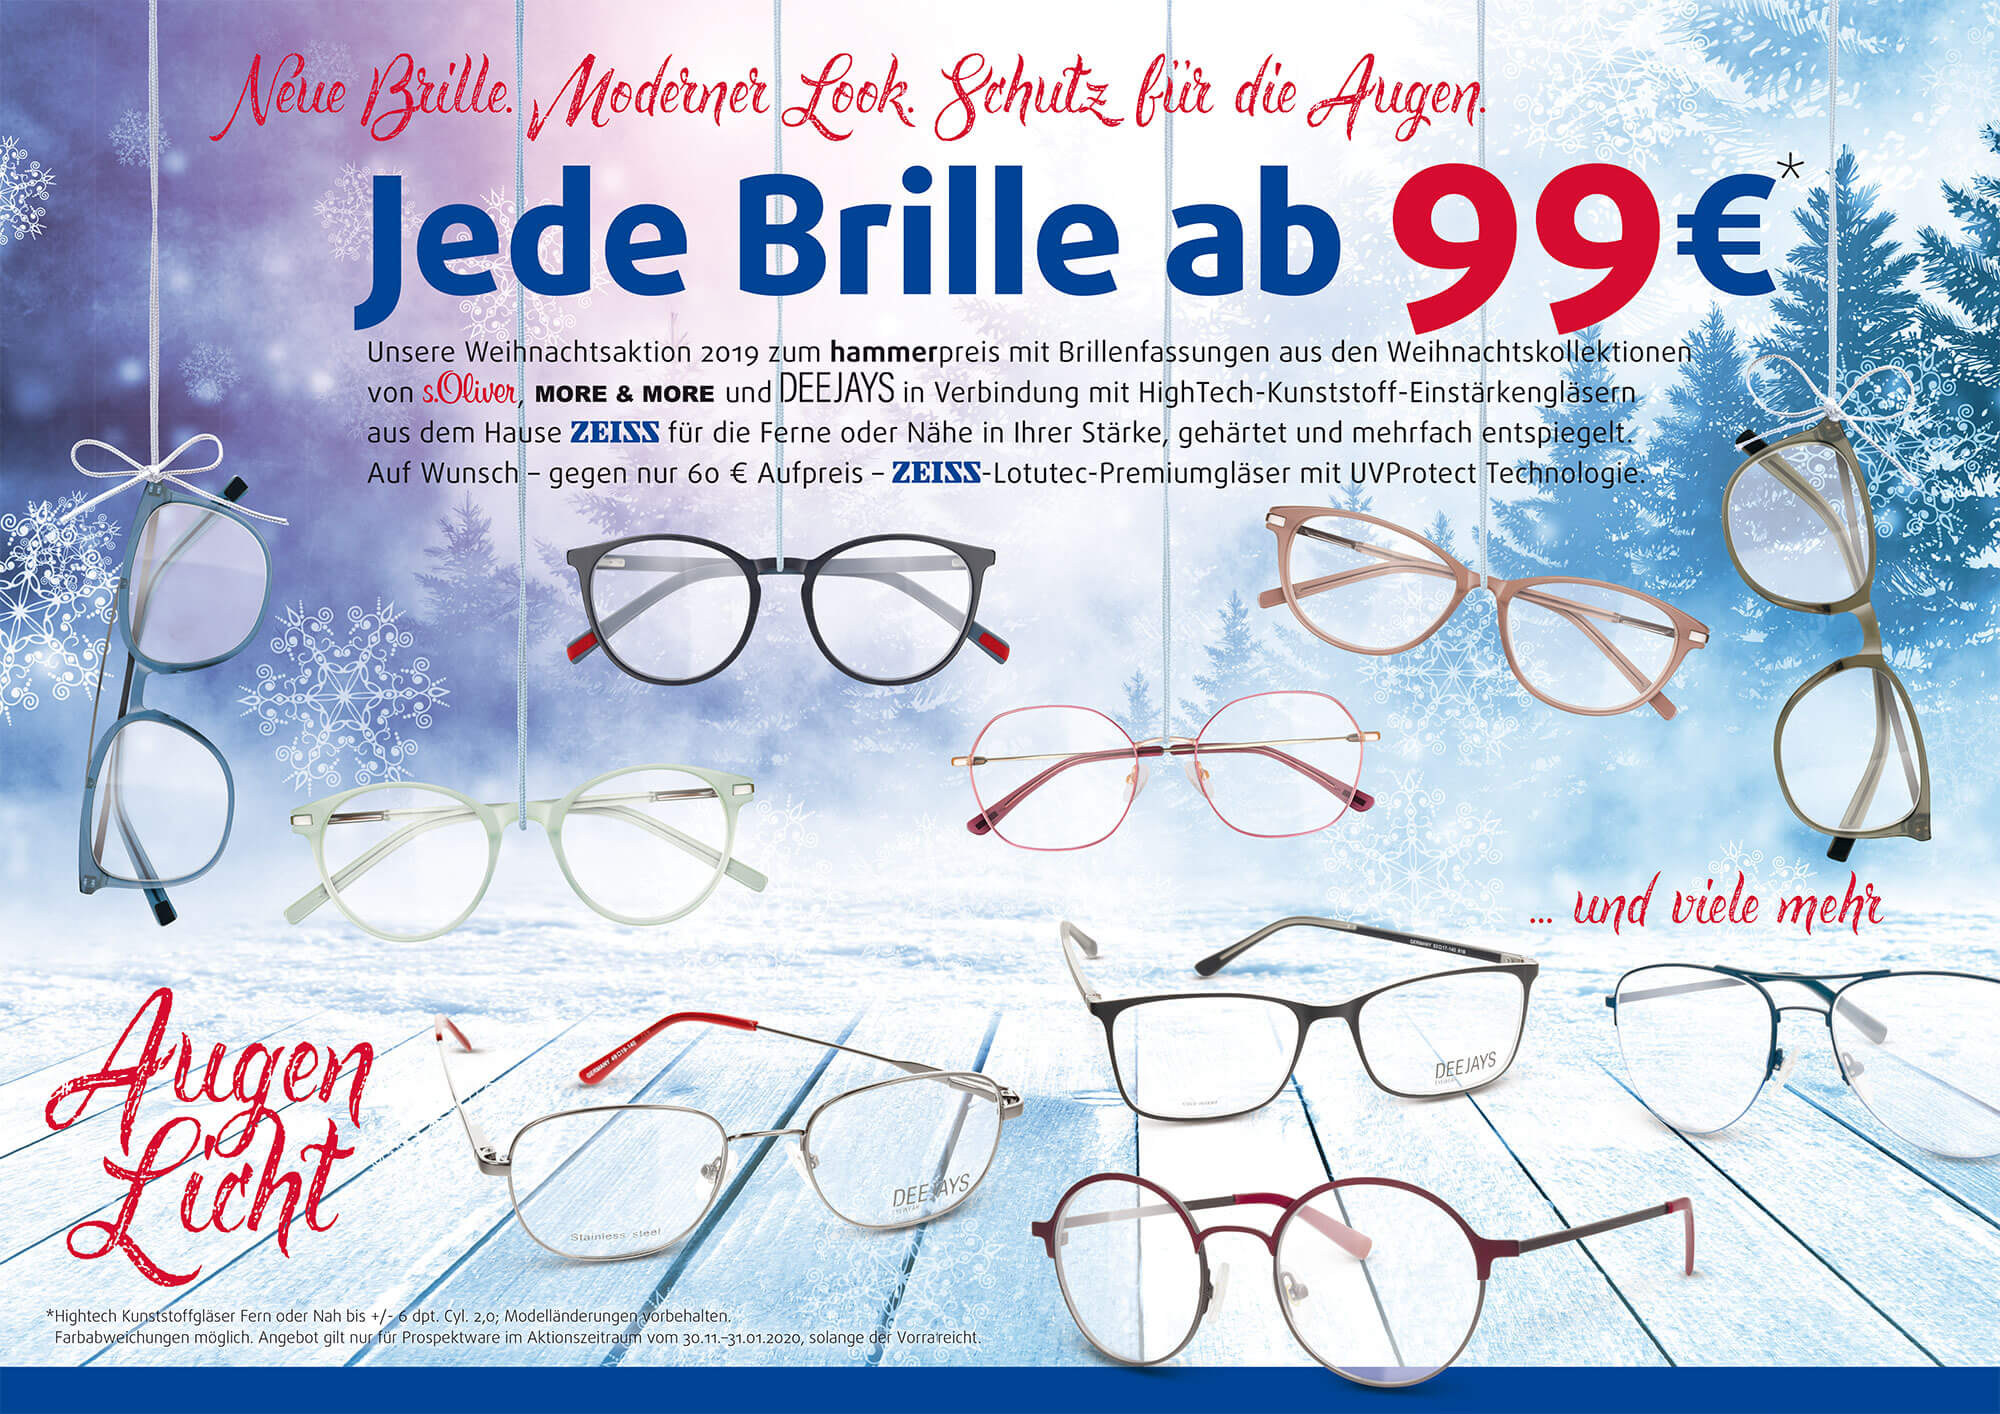 Weihnachtsaktion 2019 – Jede Brille ab 99€